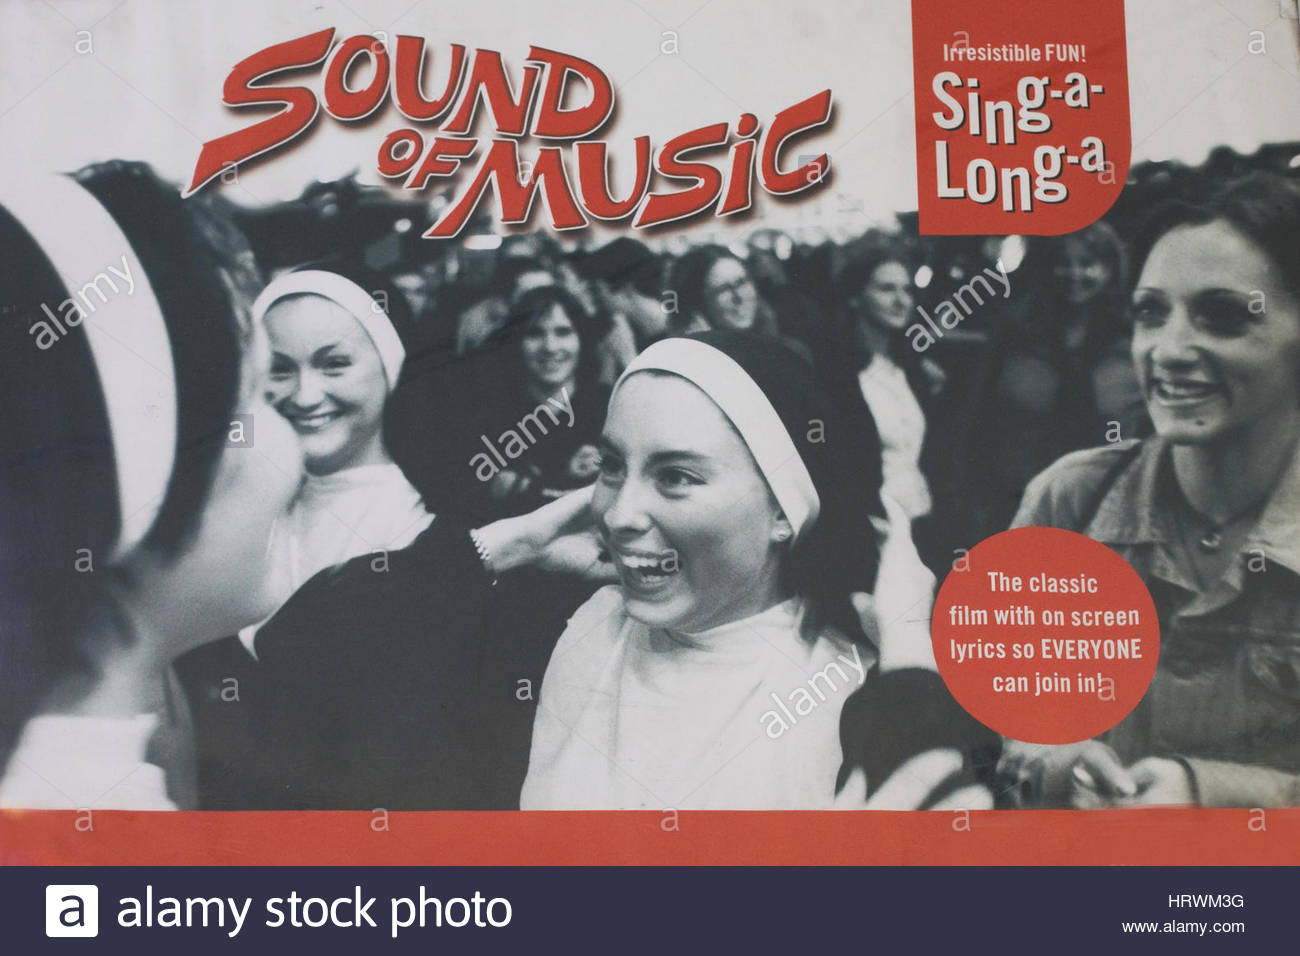 Movie Promotional poster for the film The sound of music - Stock Image